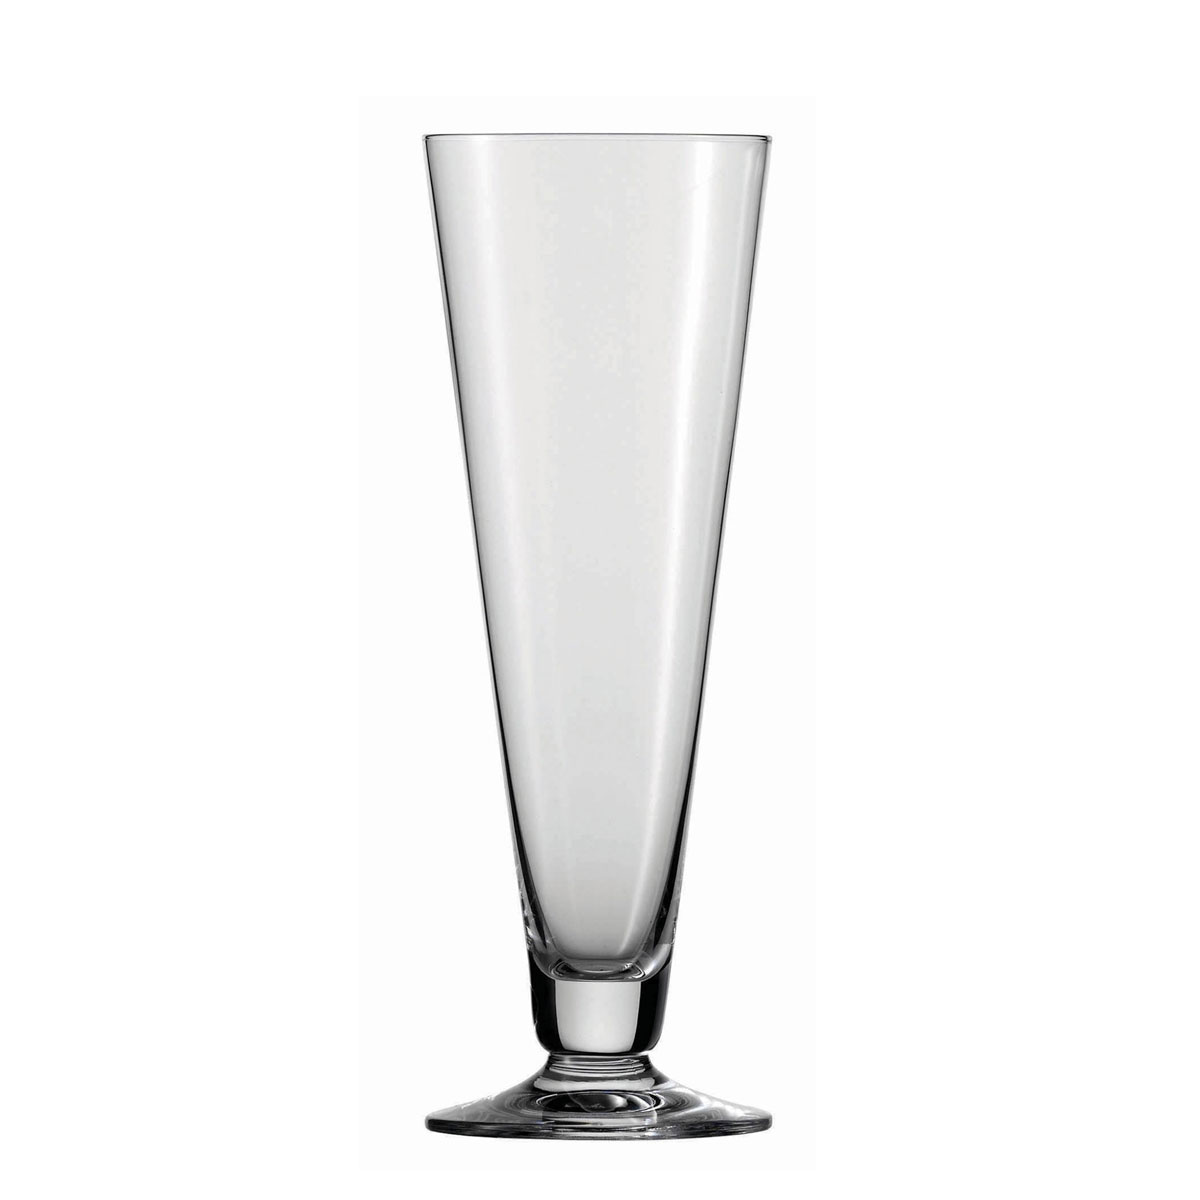 Schott Zwiesel Tritan Crystal, Beer Footed Pilsner, Single